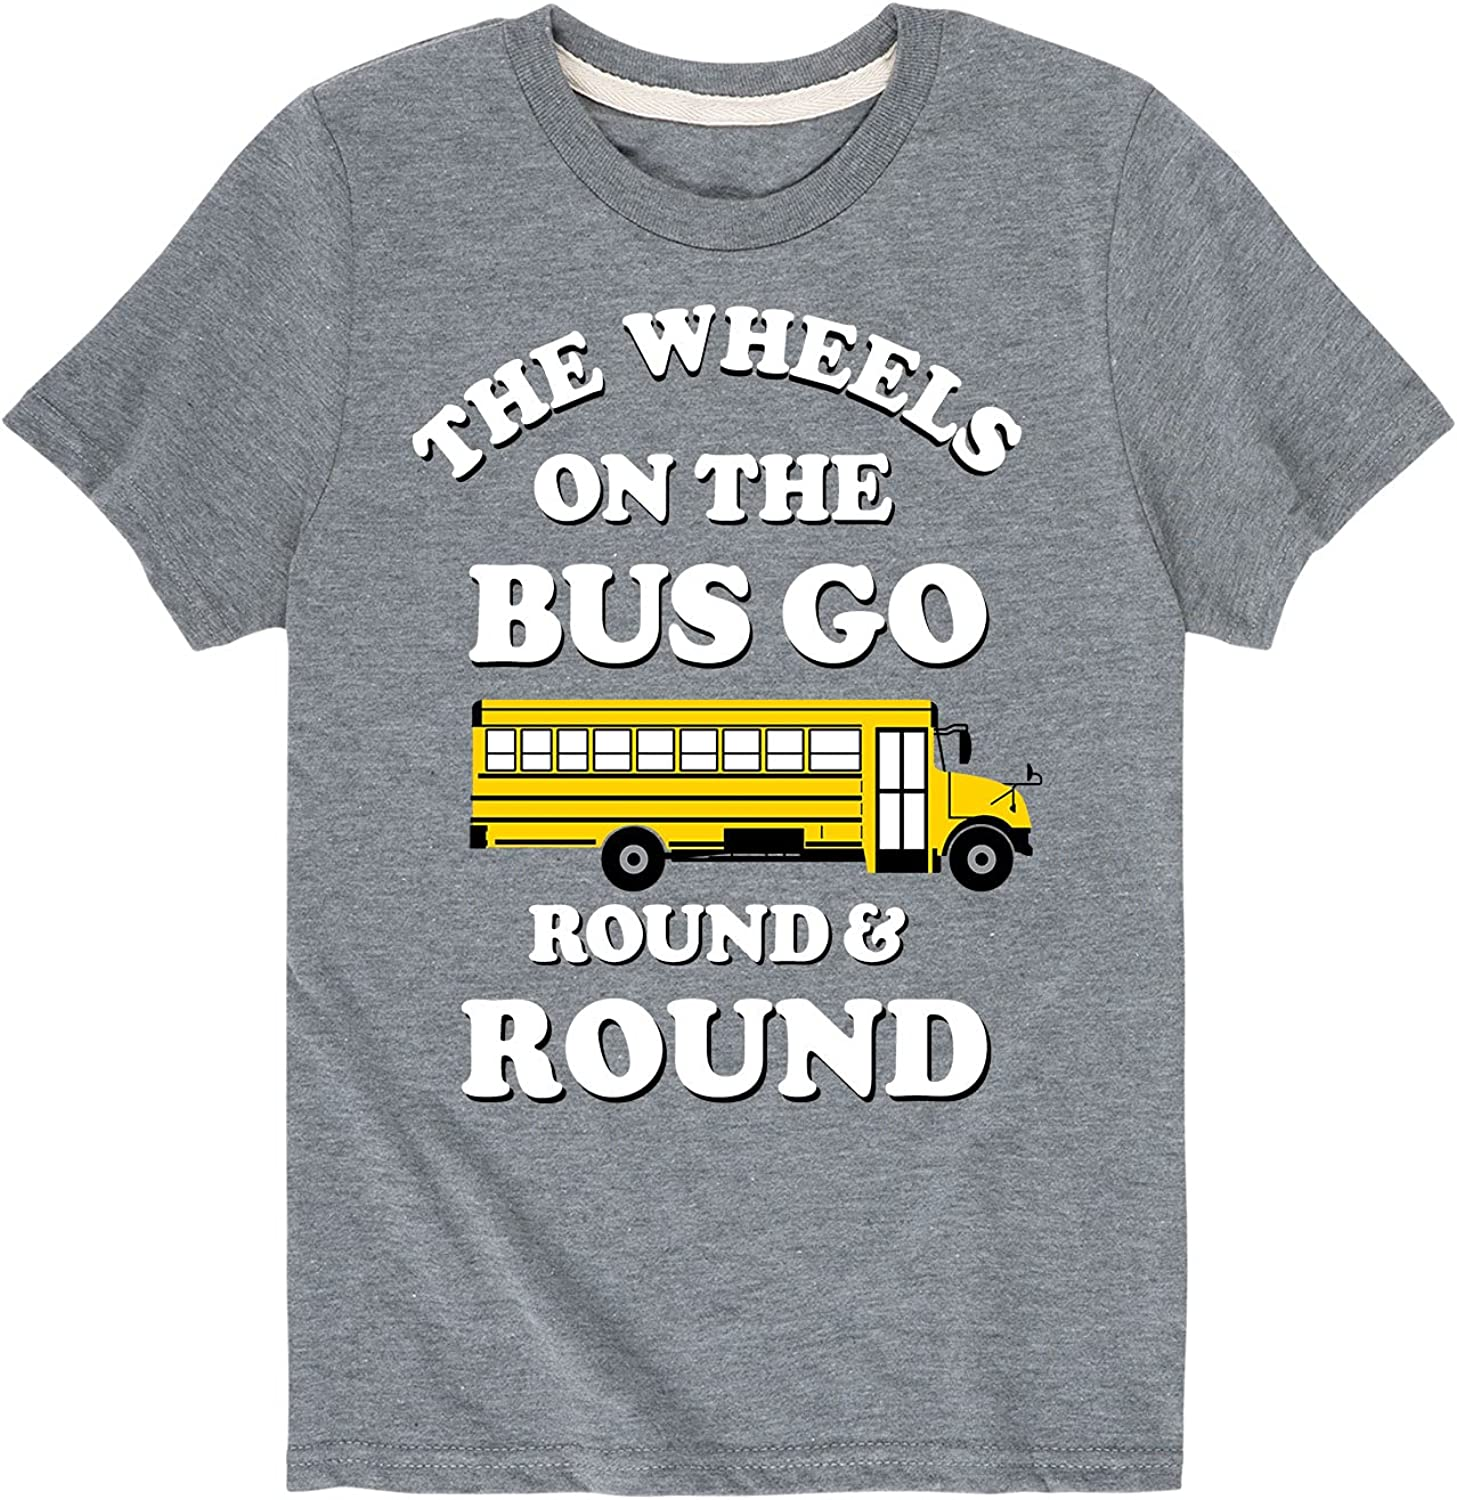 Wheels On The Bus - Sleeve Super intense SALE T-Shirt Seasonal Wrap Introduction Short Graphic Youth